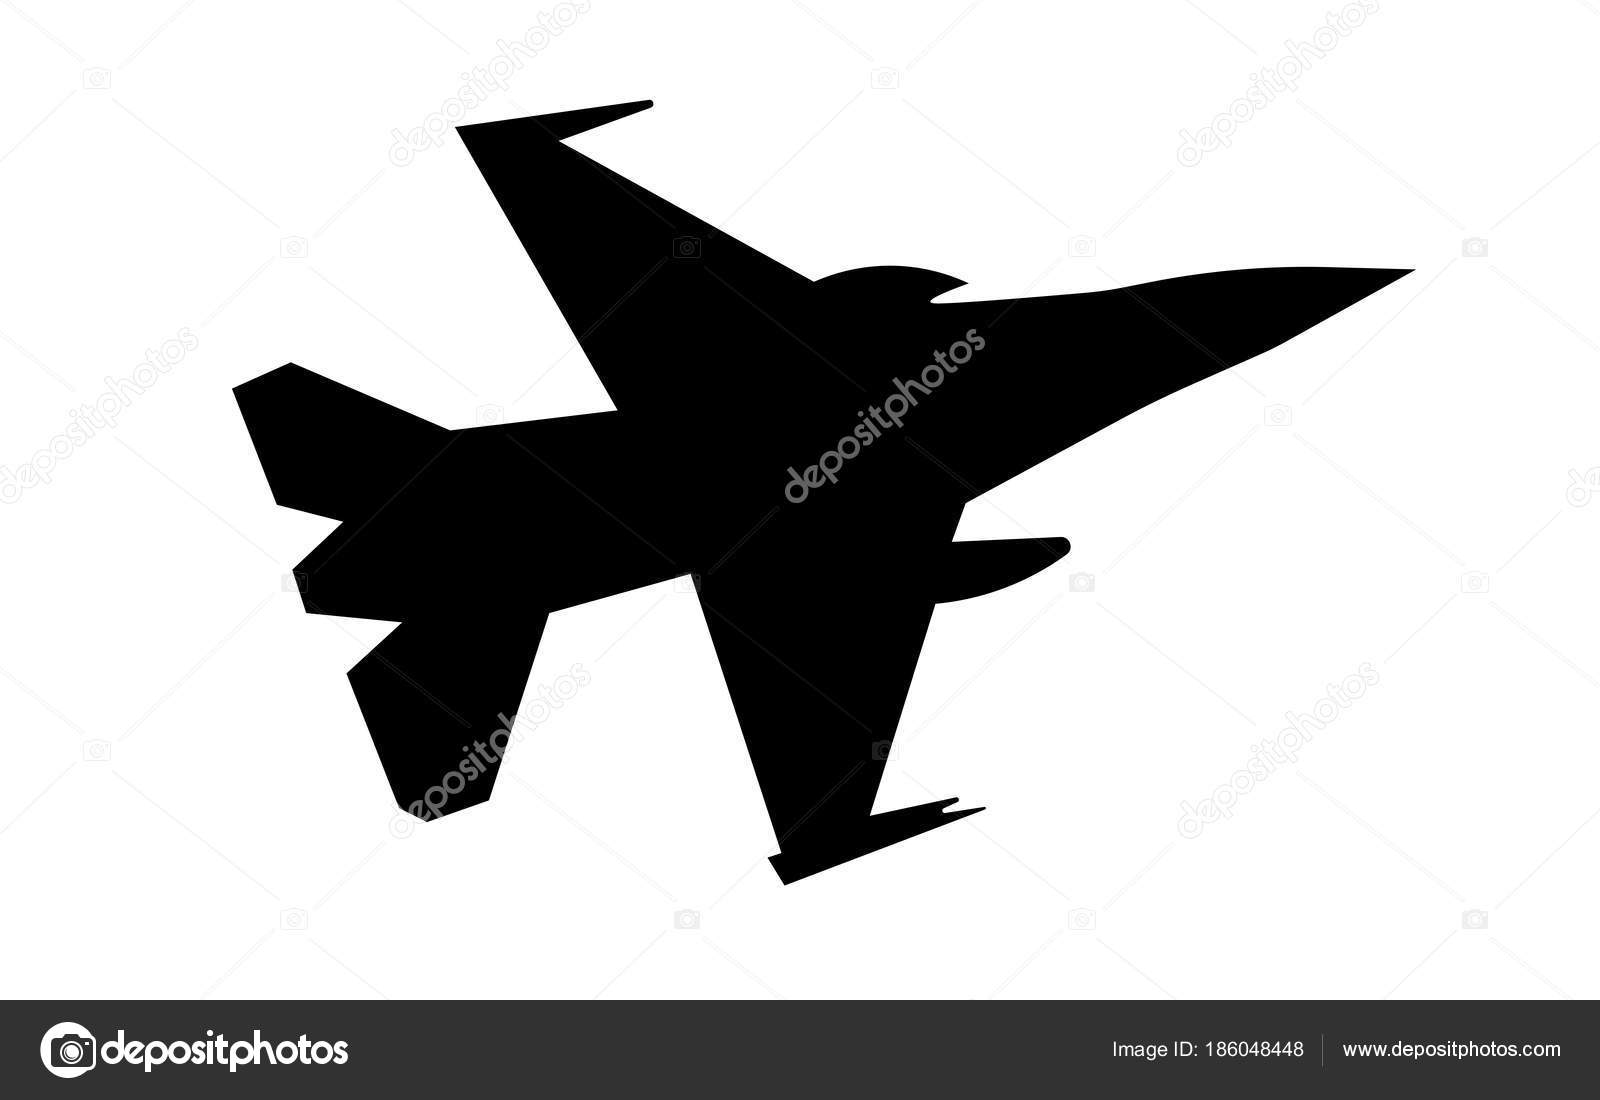 F16 Silhouette On White Background Stock Vector C Vector Best 186048448